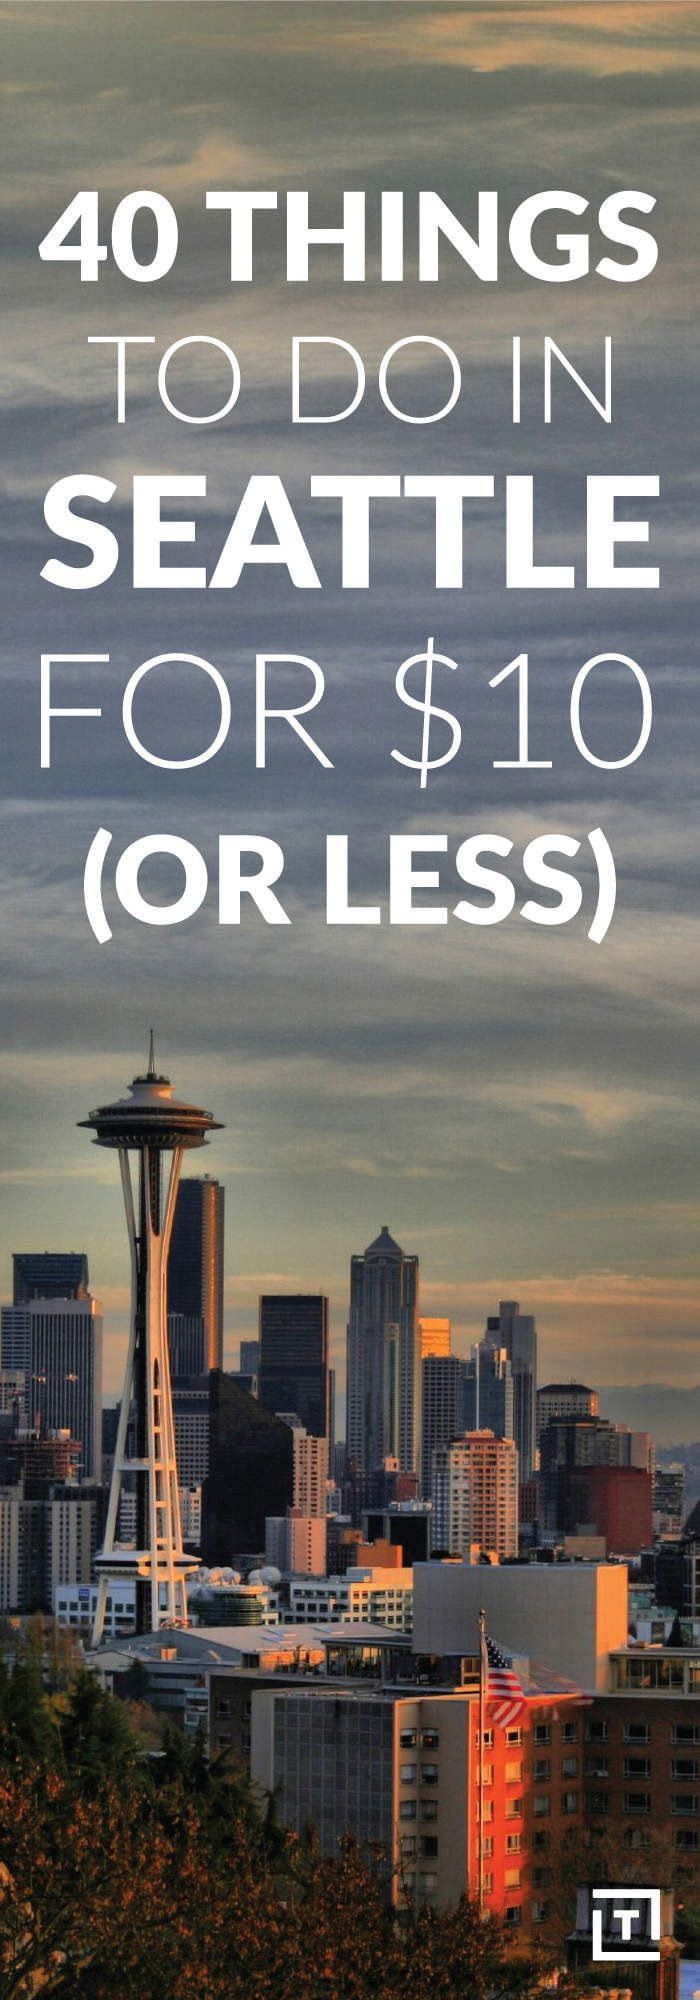 40 Things To Do In Seattle For $10 (Or Less)